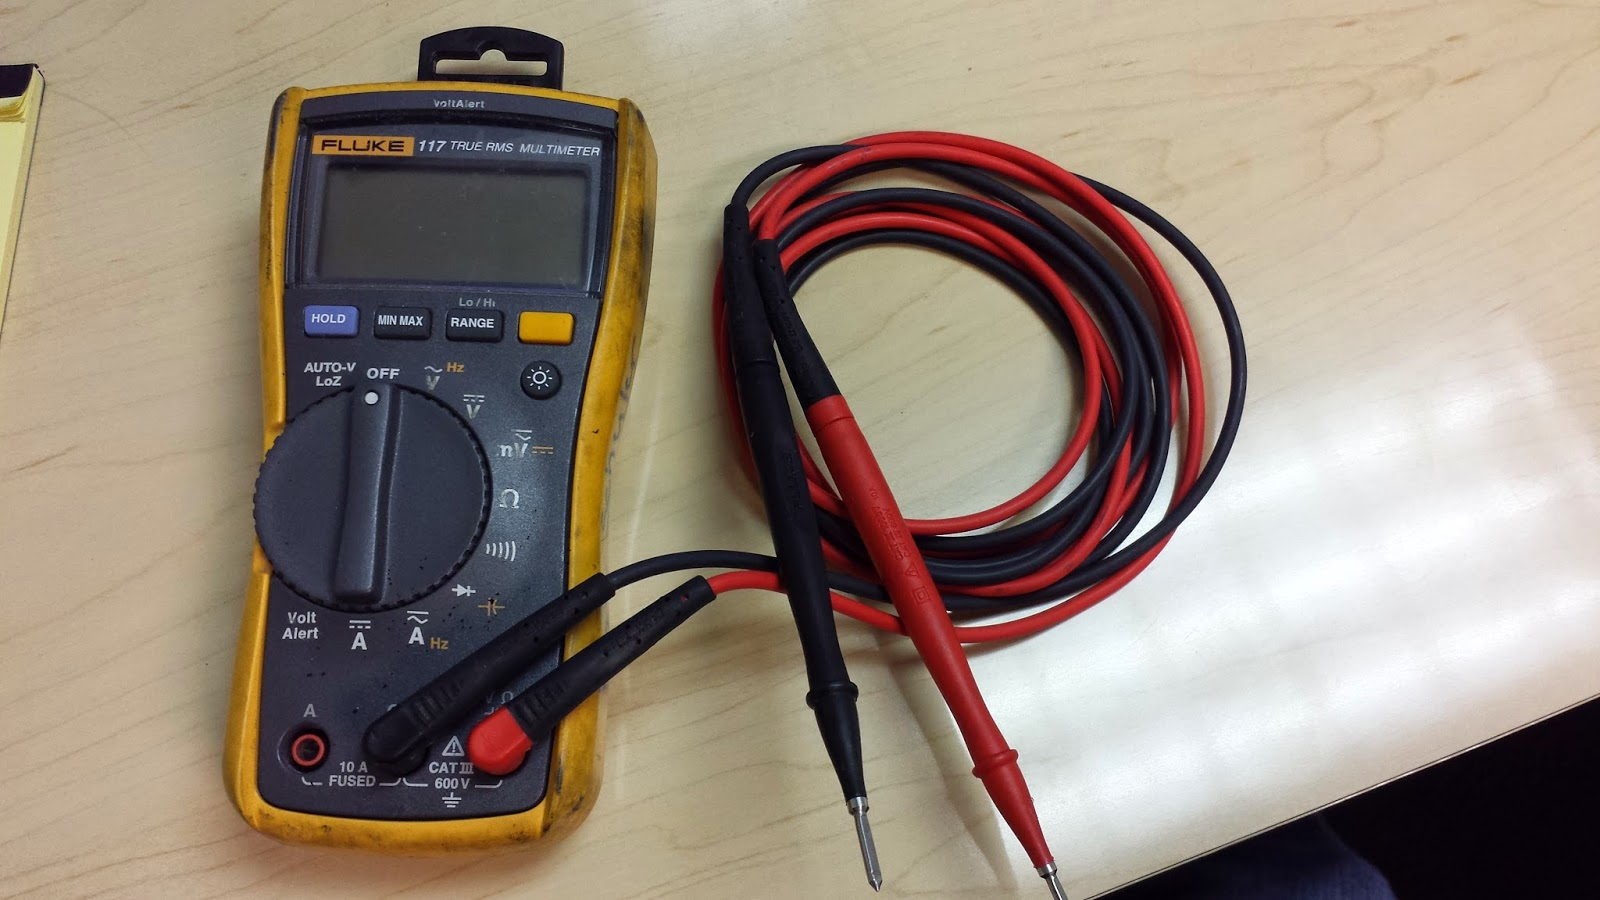 FLUKE 117 Multi-Meter for Fire Alarm Troubleshooting